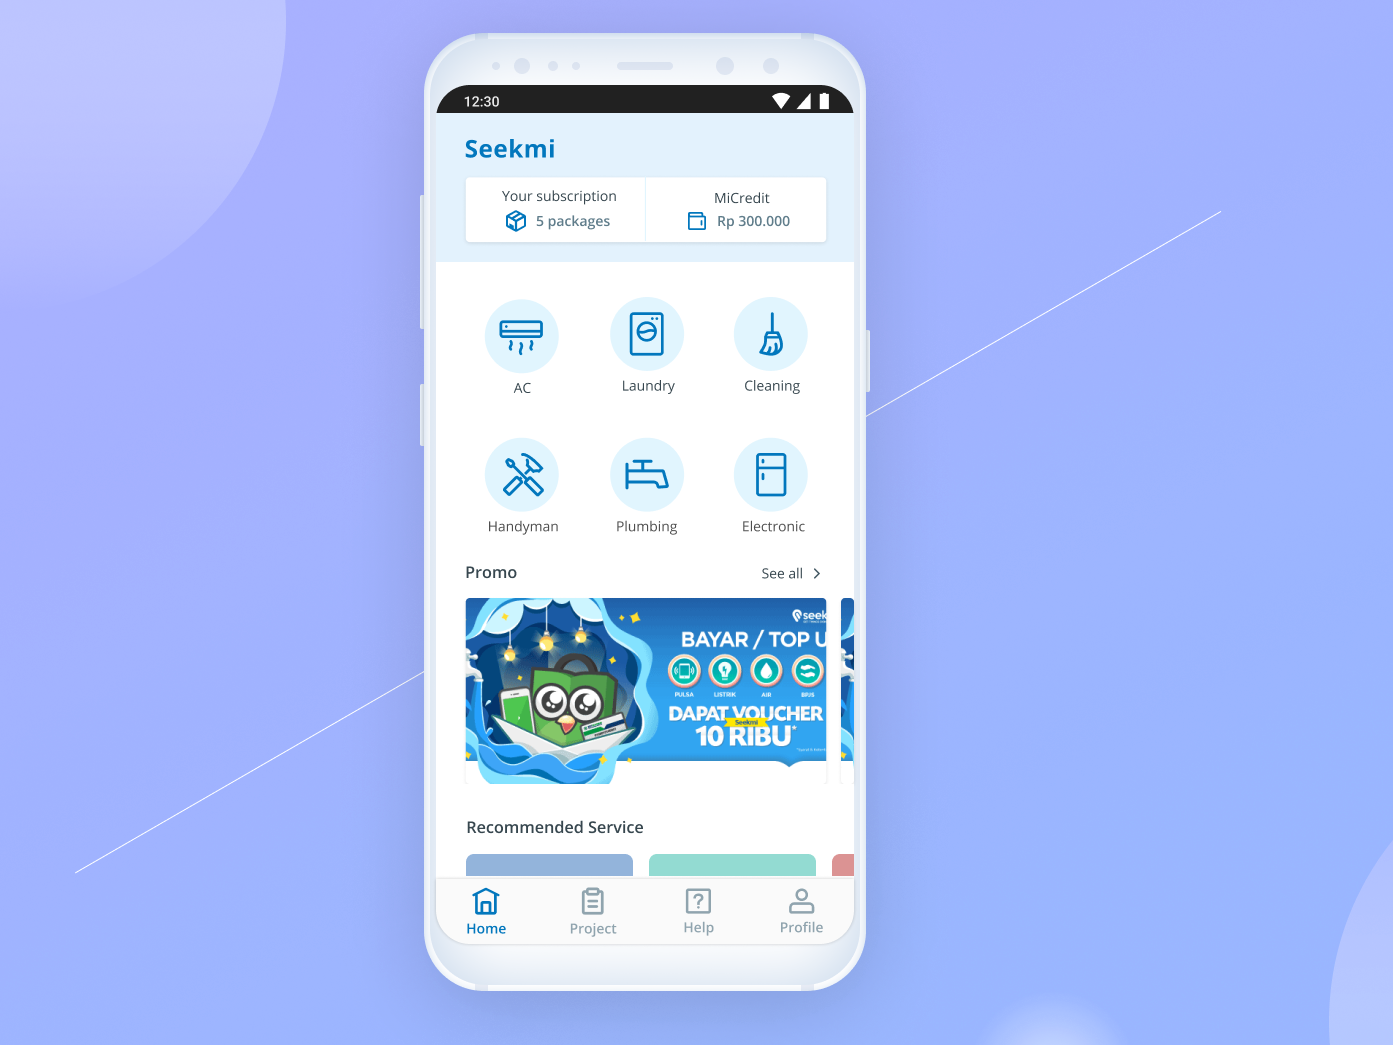 Seekmi App Homepage Redesign Concept art redesign picture pic outline branding design concept app 2d typography illustration icon ui